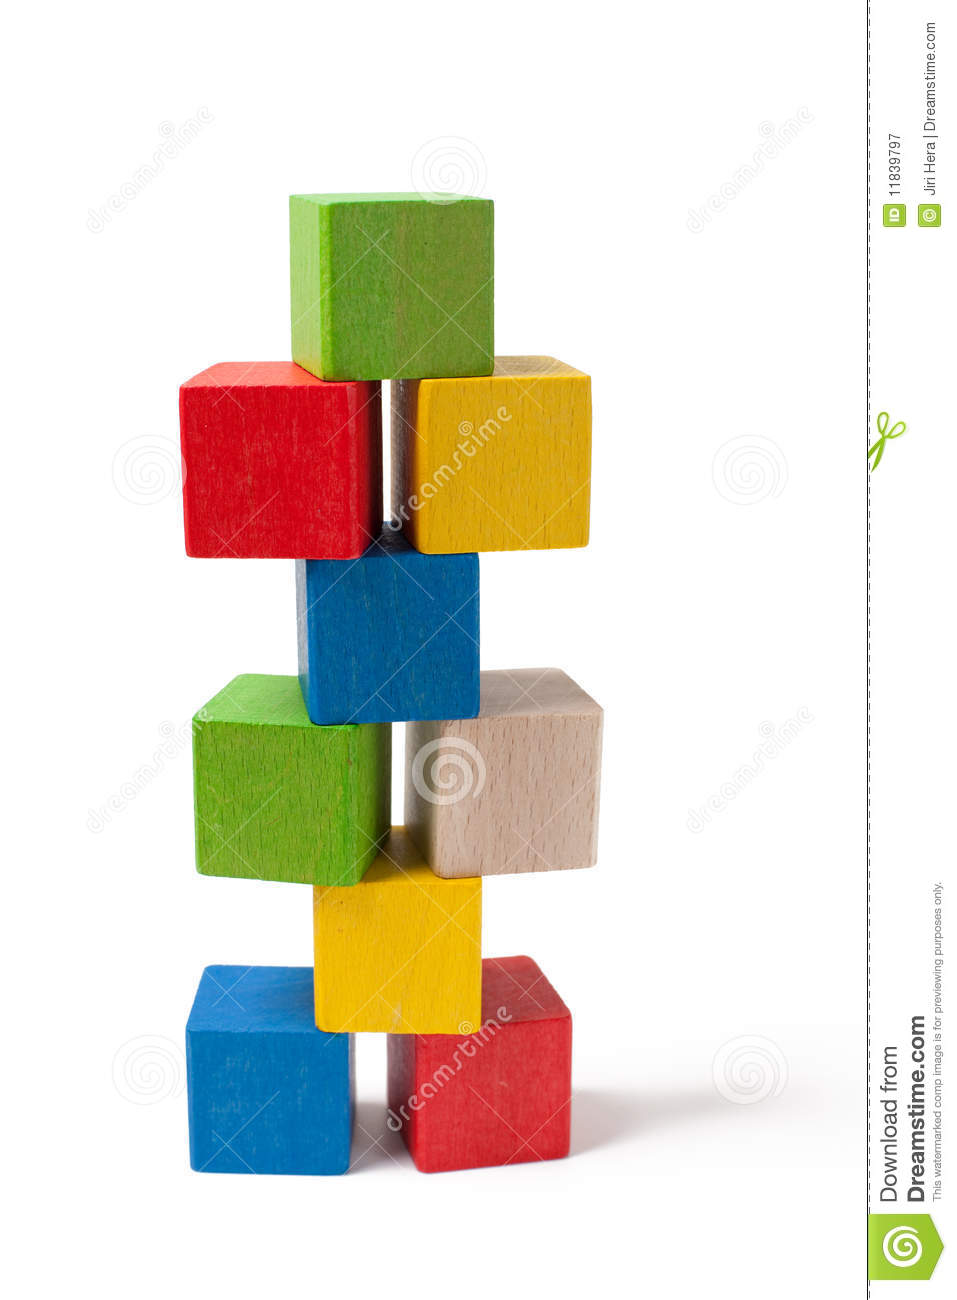 Pile of colorful wooden toy blocks royalty free stock